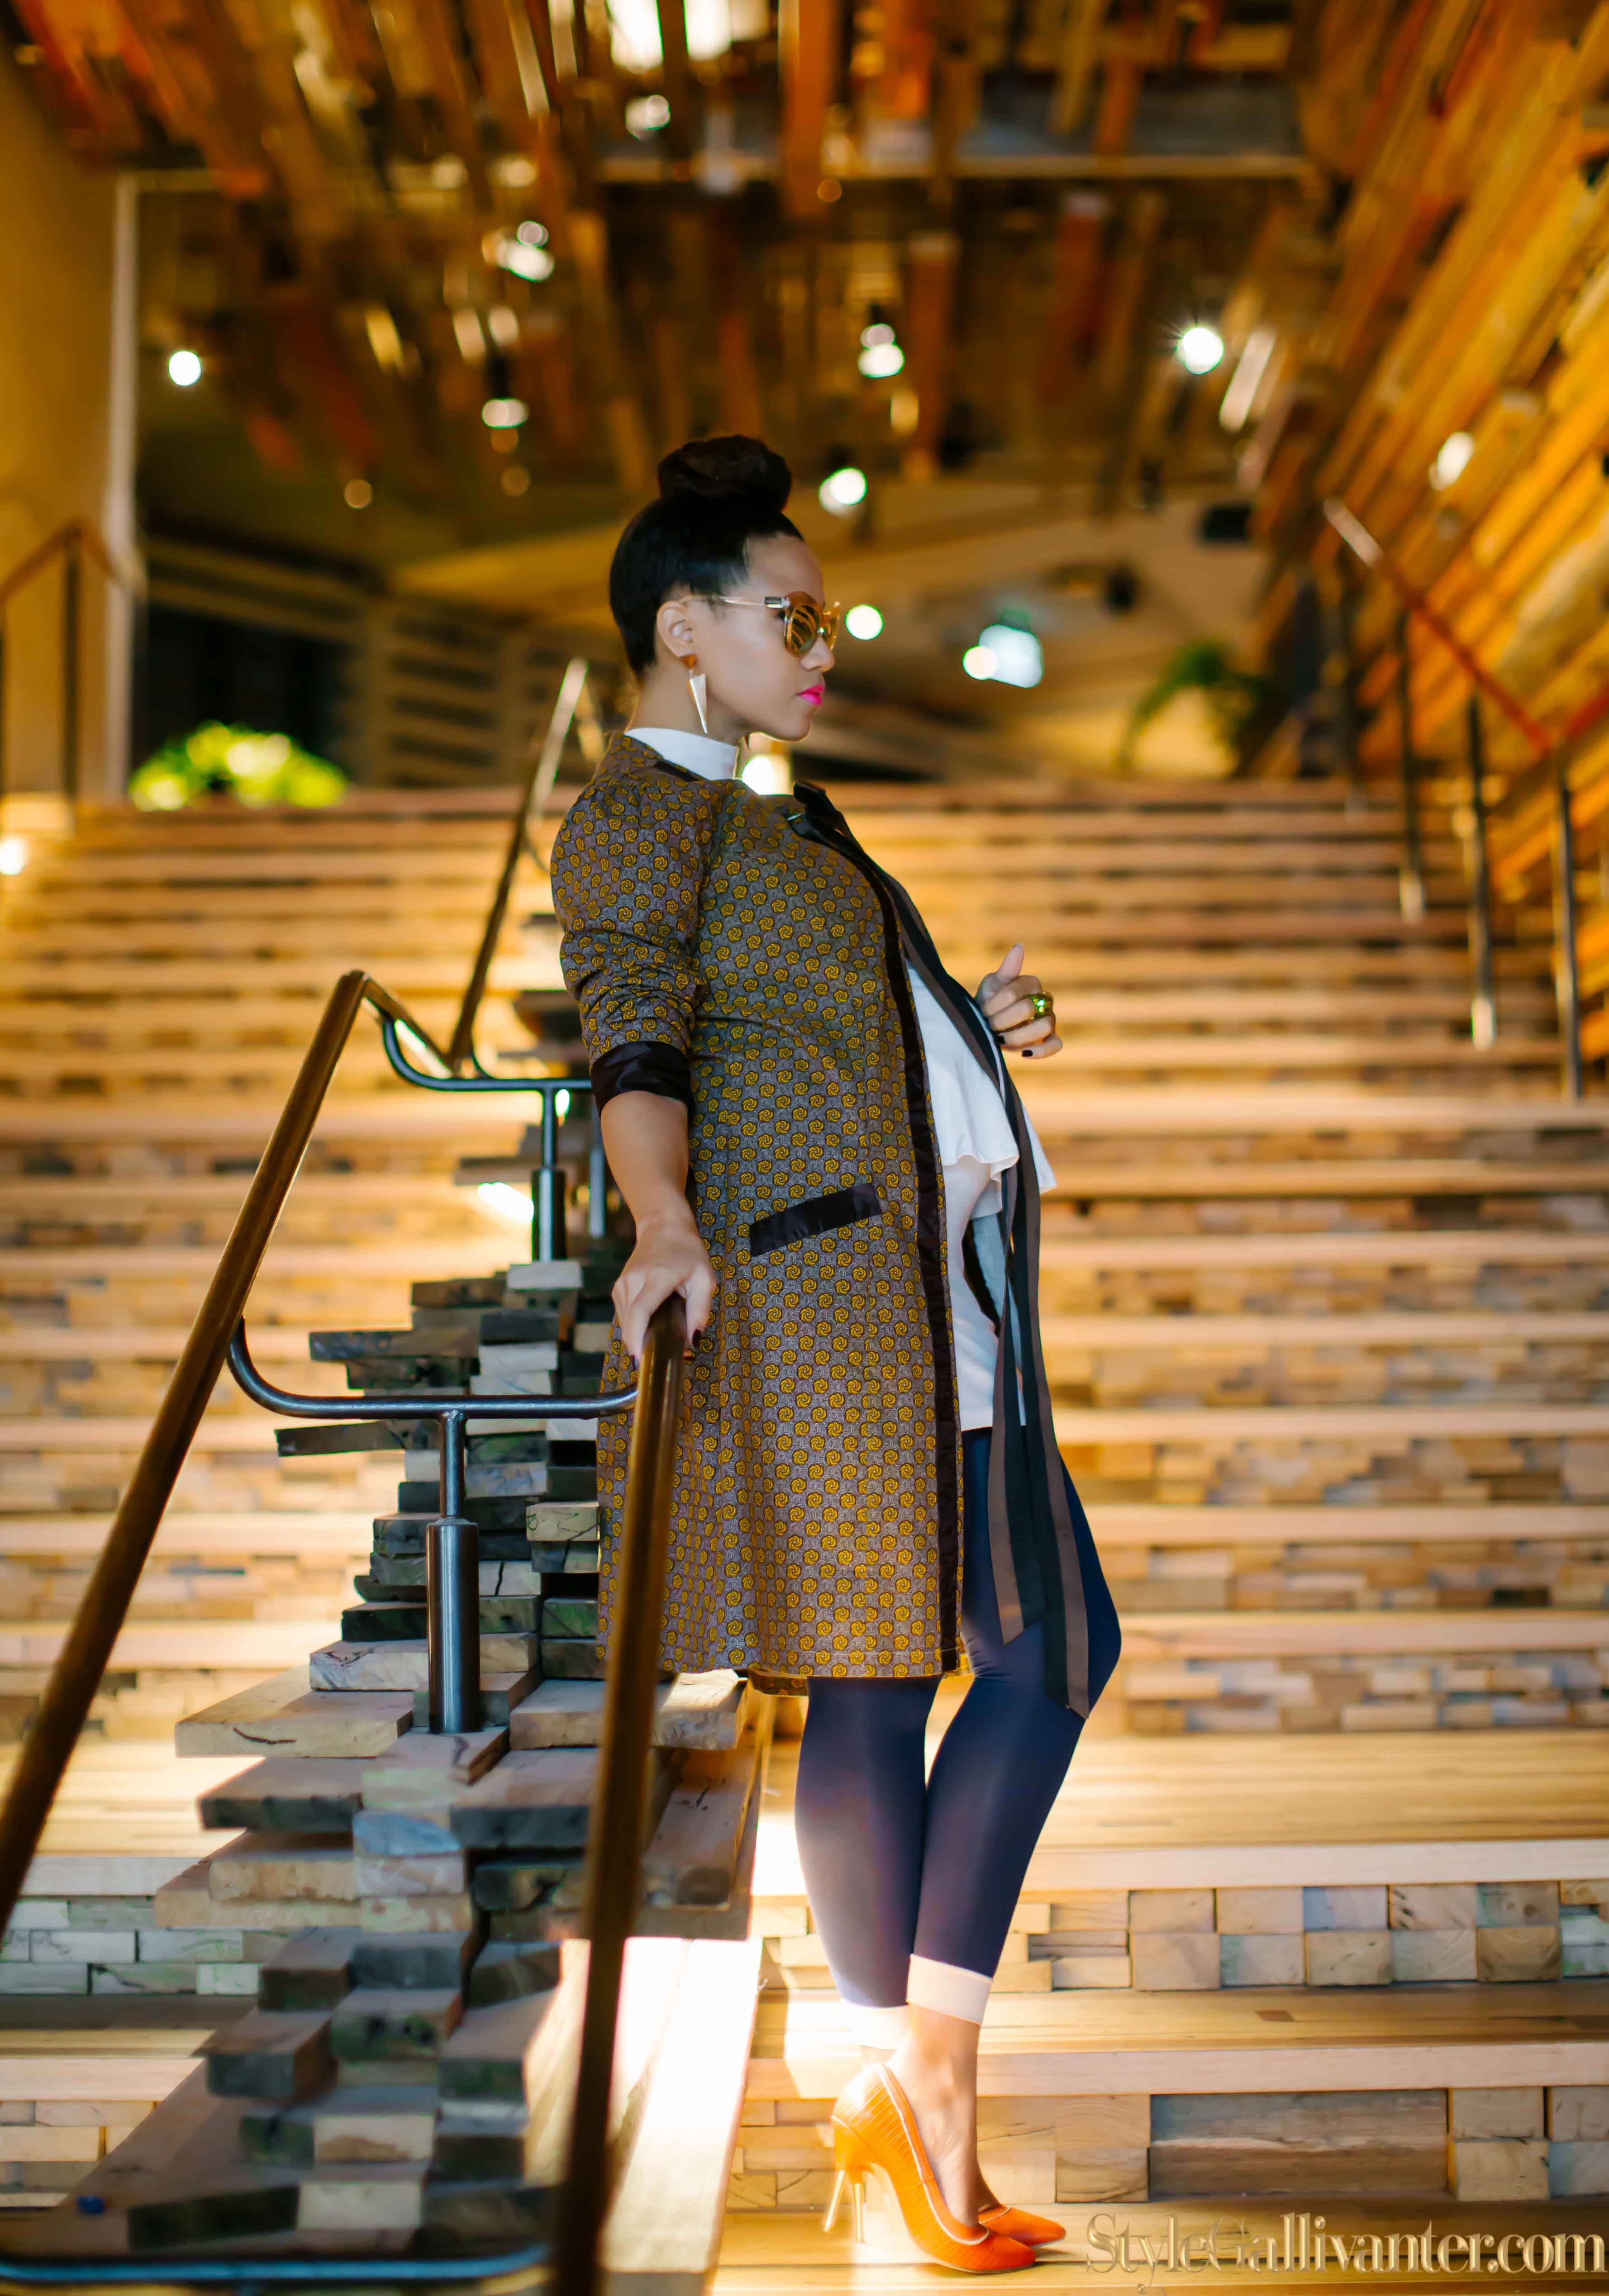 africa's-top-bloggers_best-new-fashion-blogs-australia-2015_teal-outfit_msfw-2014-fashion-influencers-melbourne,hotel-hotel,canberra's-top-fashion-bloggers_best-fashion-blogs-canberra-8